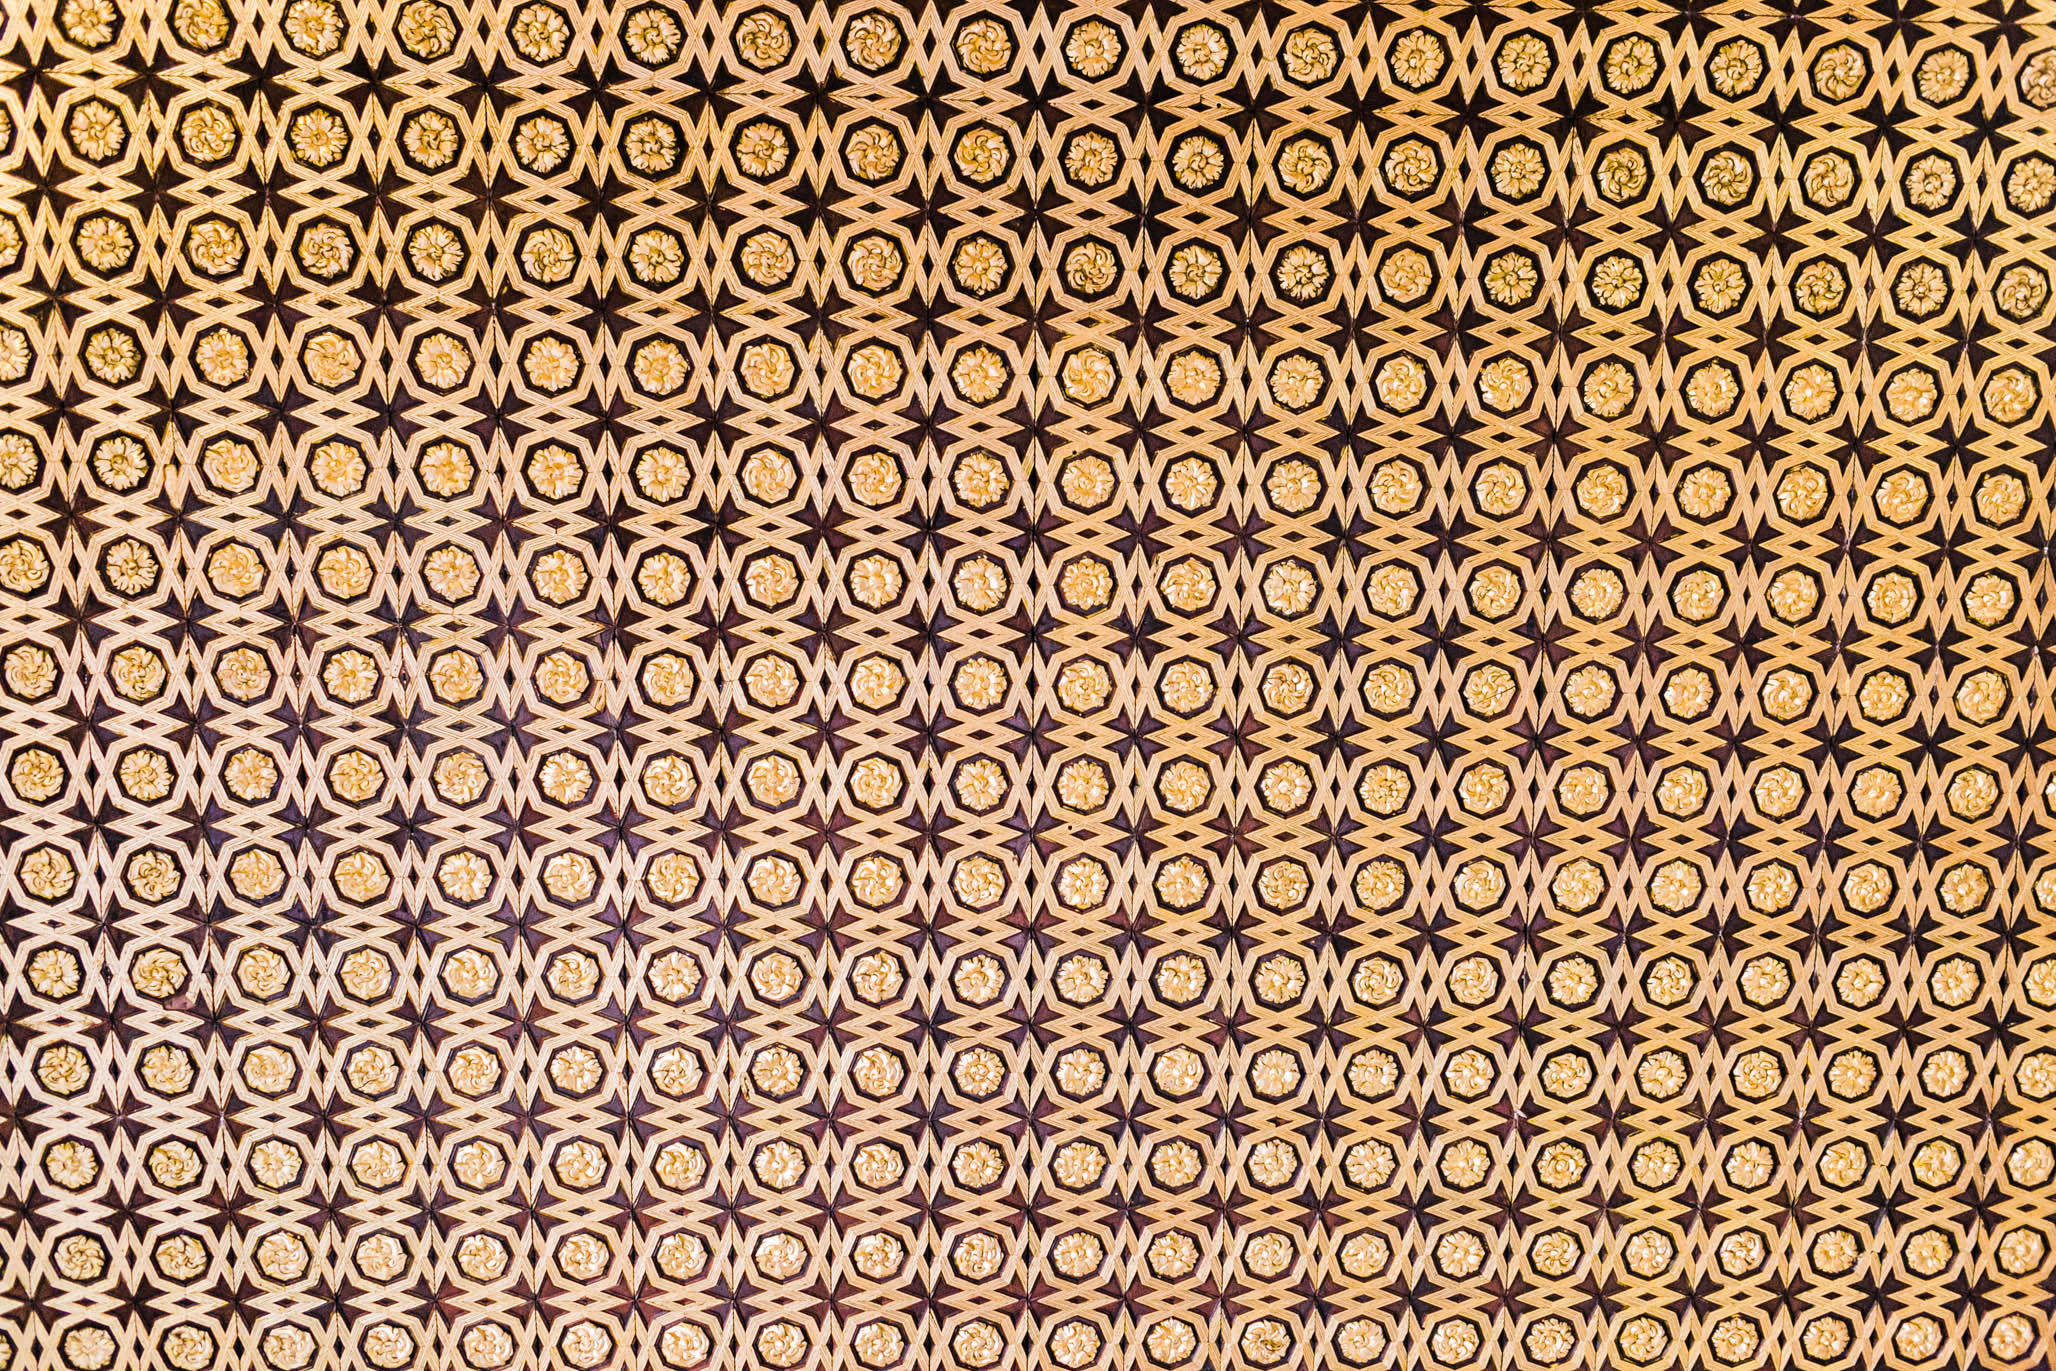 Every ceiling in the palace looked something like this.   Unbelievable.